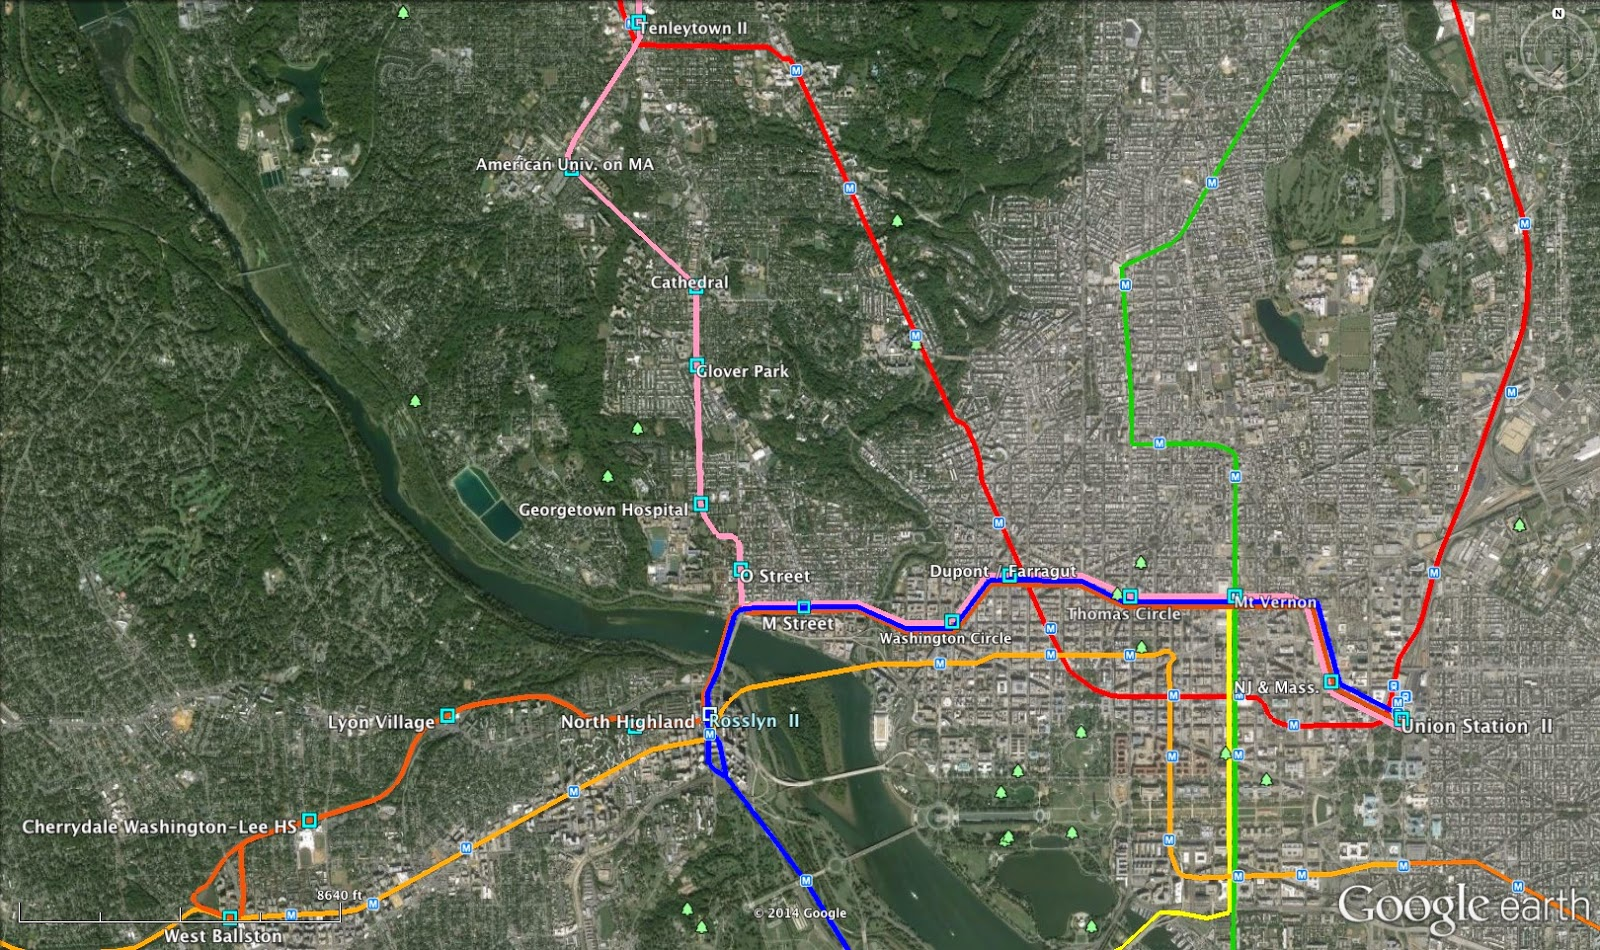 Silver Line Dc Map.Leesburg Loop Silver Line Phase Iii Oil Free Greater Washington